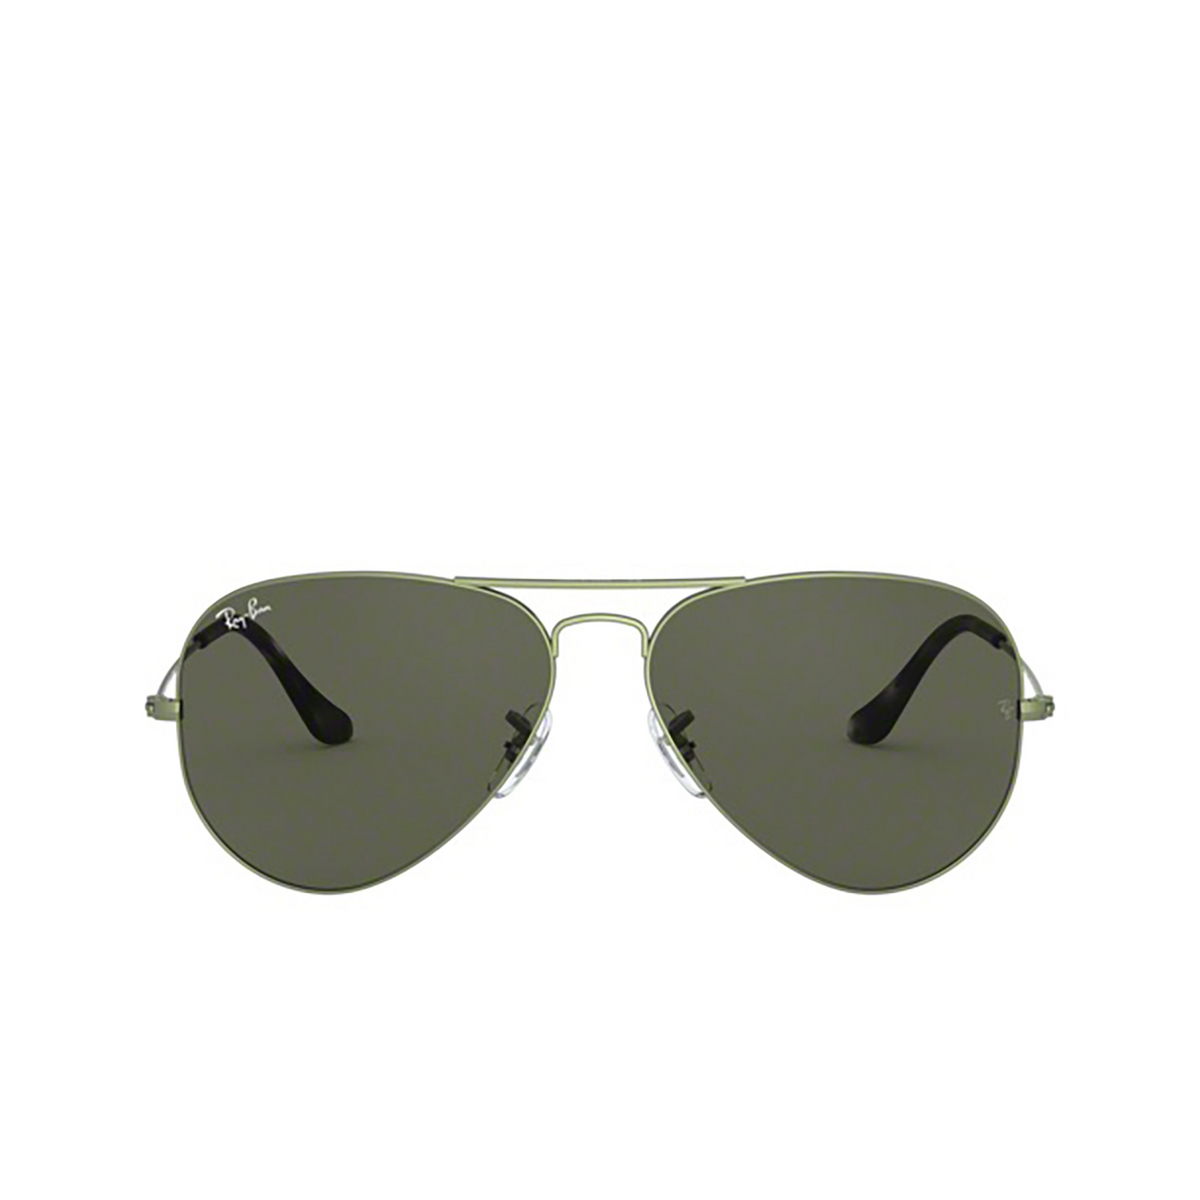 Ray-Ban® Aviator Sunglasses: Aviator Large Metal RB3025 color Sand Transparent Green 919131 - front view.